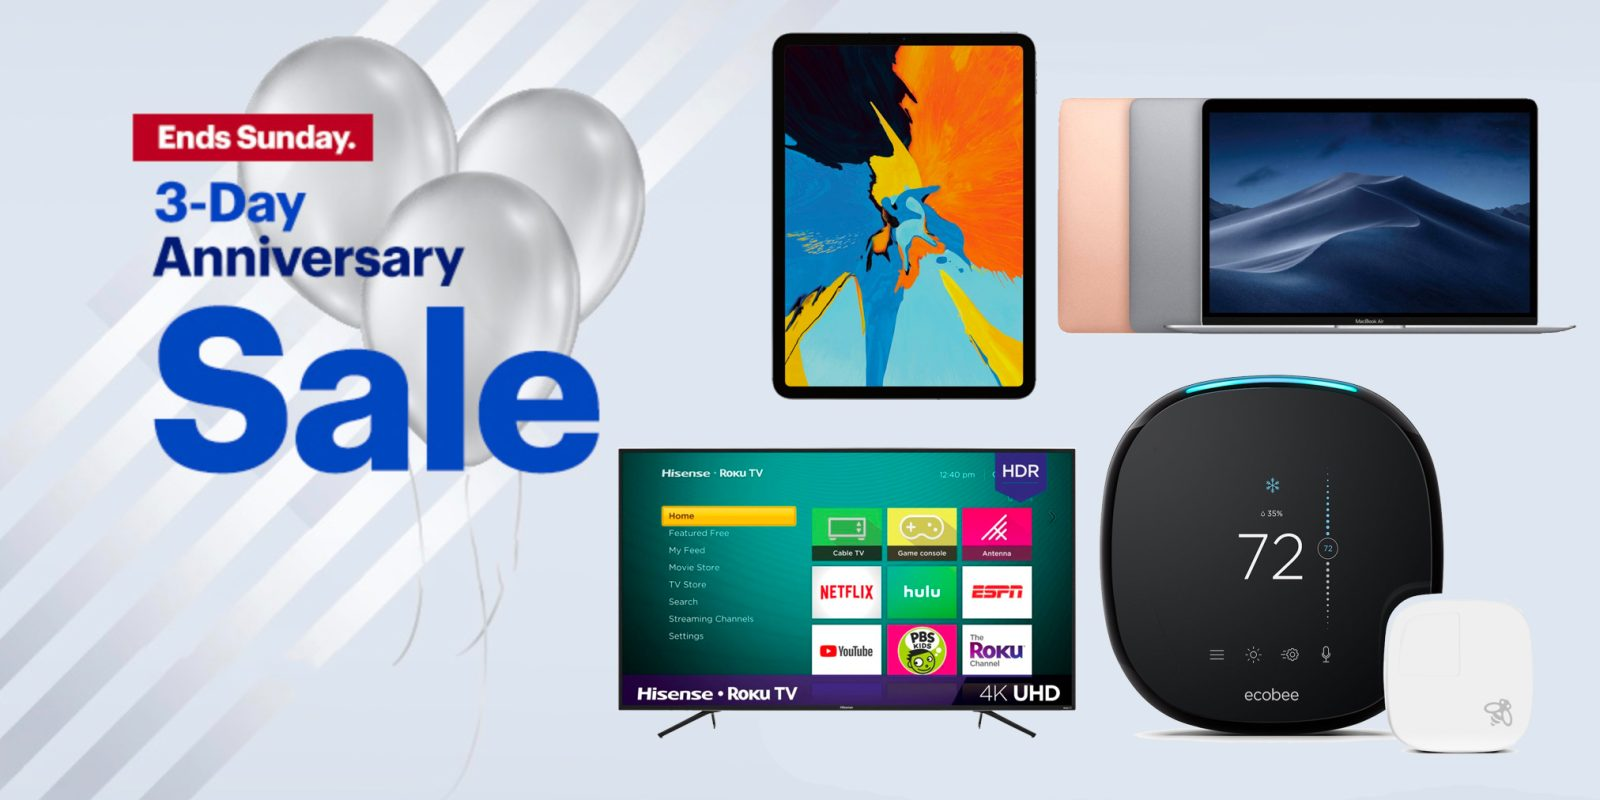 Best Buy anniversary sale is live! Take up to $400 off iPads, MacBooks, smart home gear, more